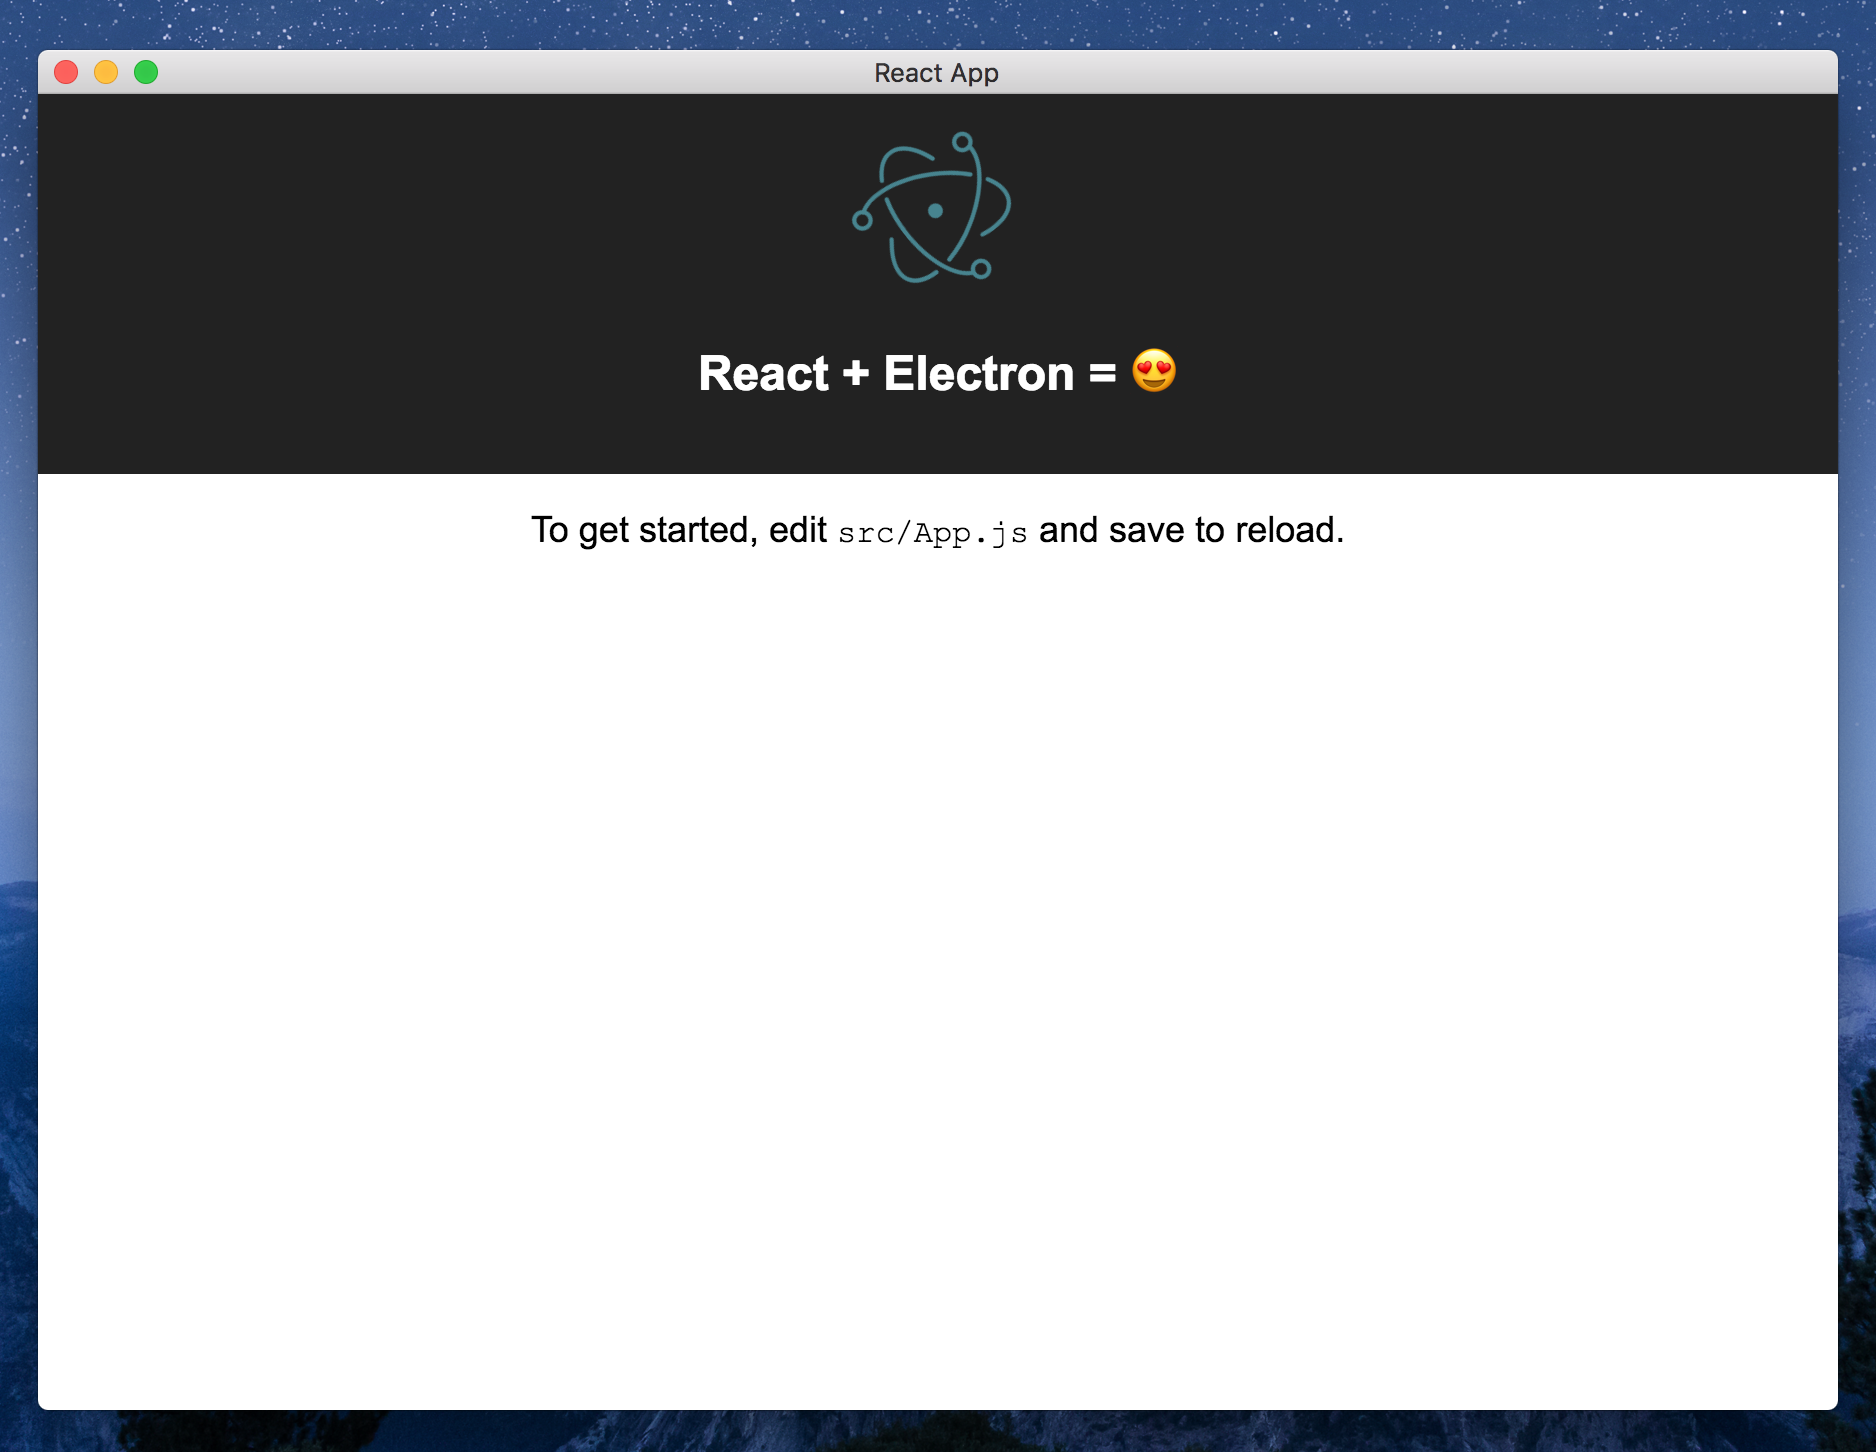 ⚡️ From React to an Electron app ready for production